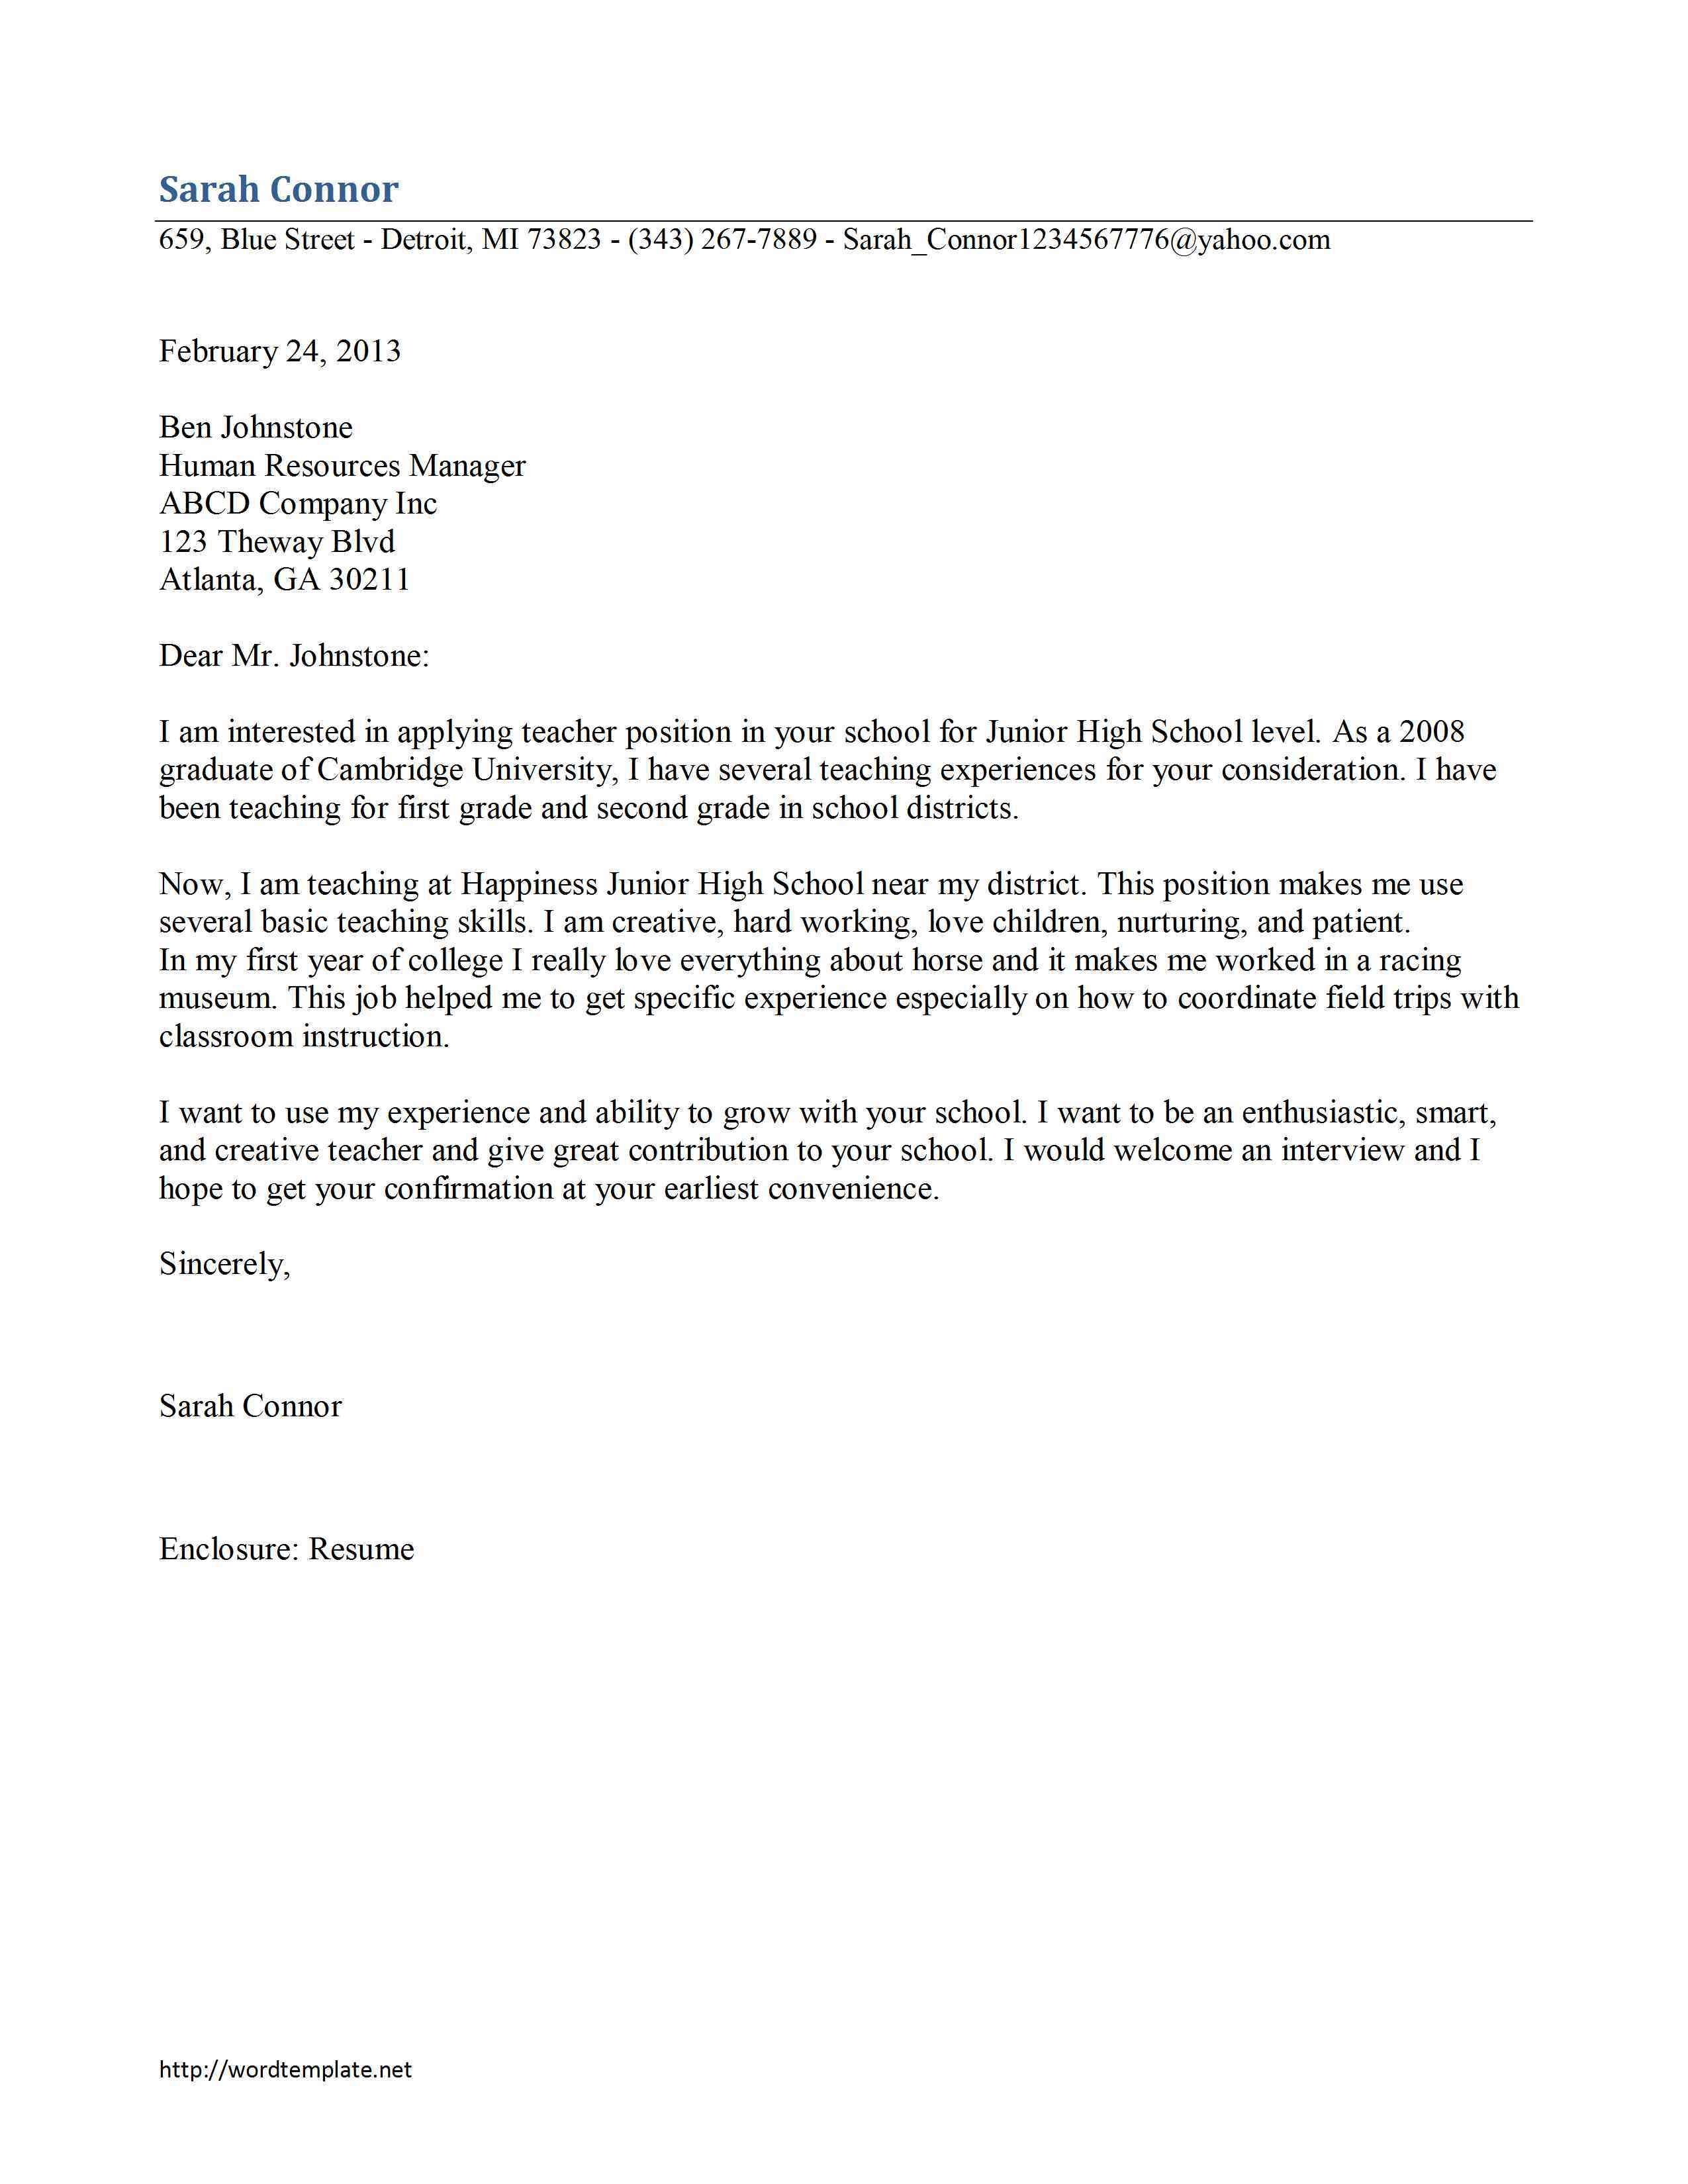 statement of service letter template example-Application Letter For Experience Certificate For Teacher Penn State line Degrees Certificates And Courses Cover Letter Format Free Microsoft Word 4-i